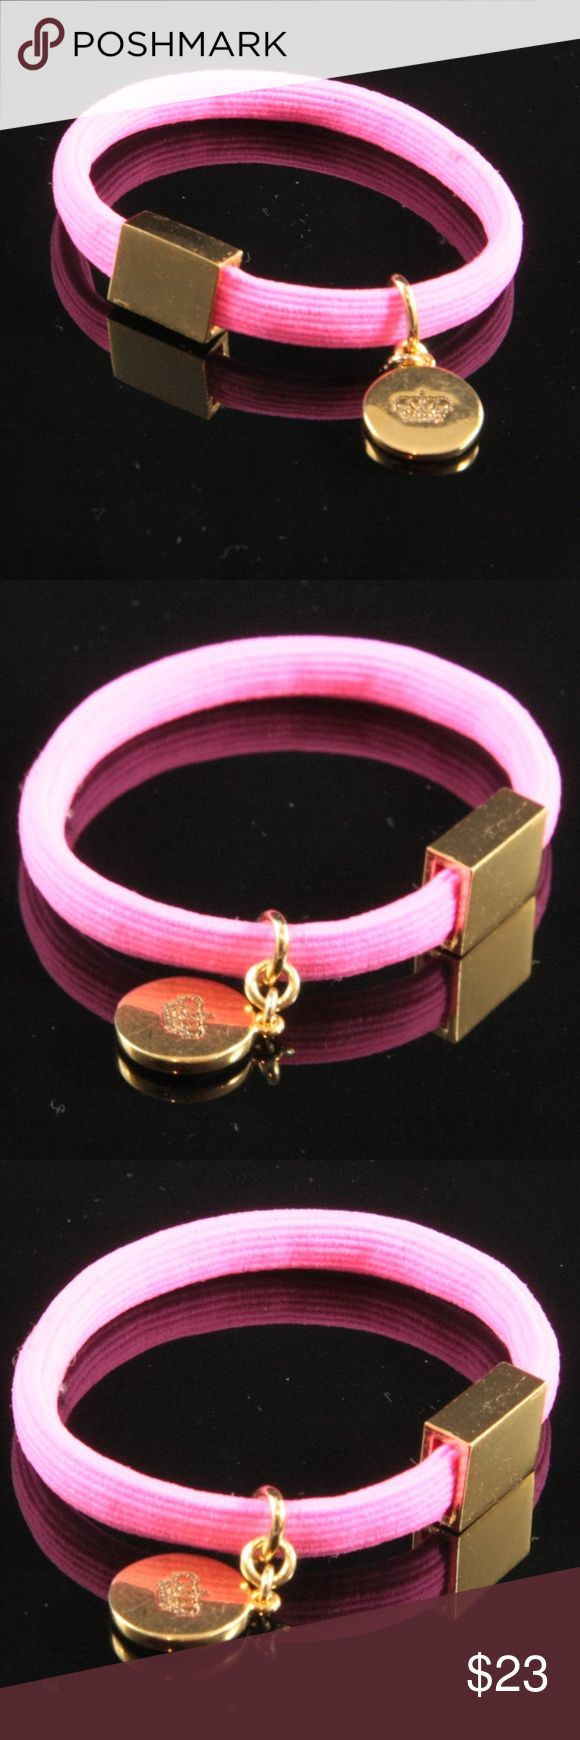 Juicy Couture Candy Pink Elastic Bracelet Juicy Couture Bracelet.  Candy Pink Elastic Band.  Round Juicy Couture Charm. Gold tone.  Used item: any wear shown in pics. Fair condition, with wear consistent with gentle use.  Bundle Up! Offers always welcome :) Juicy Couture Jewelry Bracelets